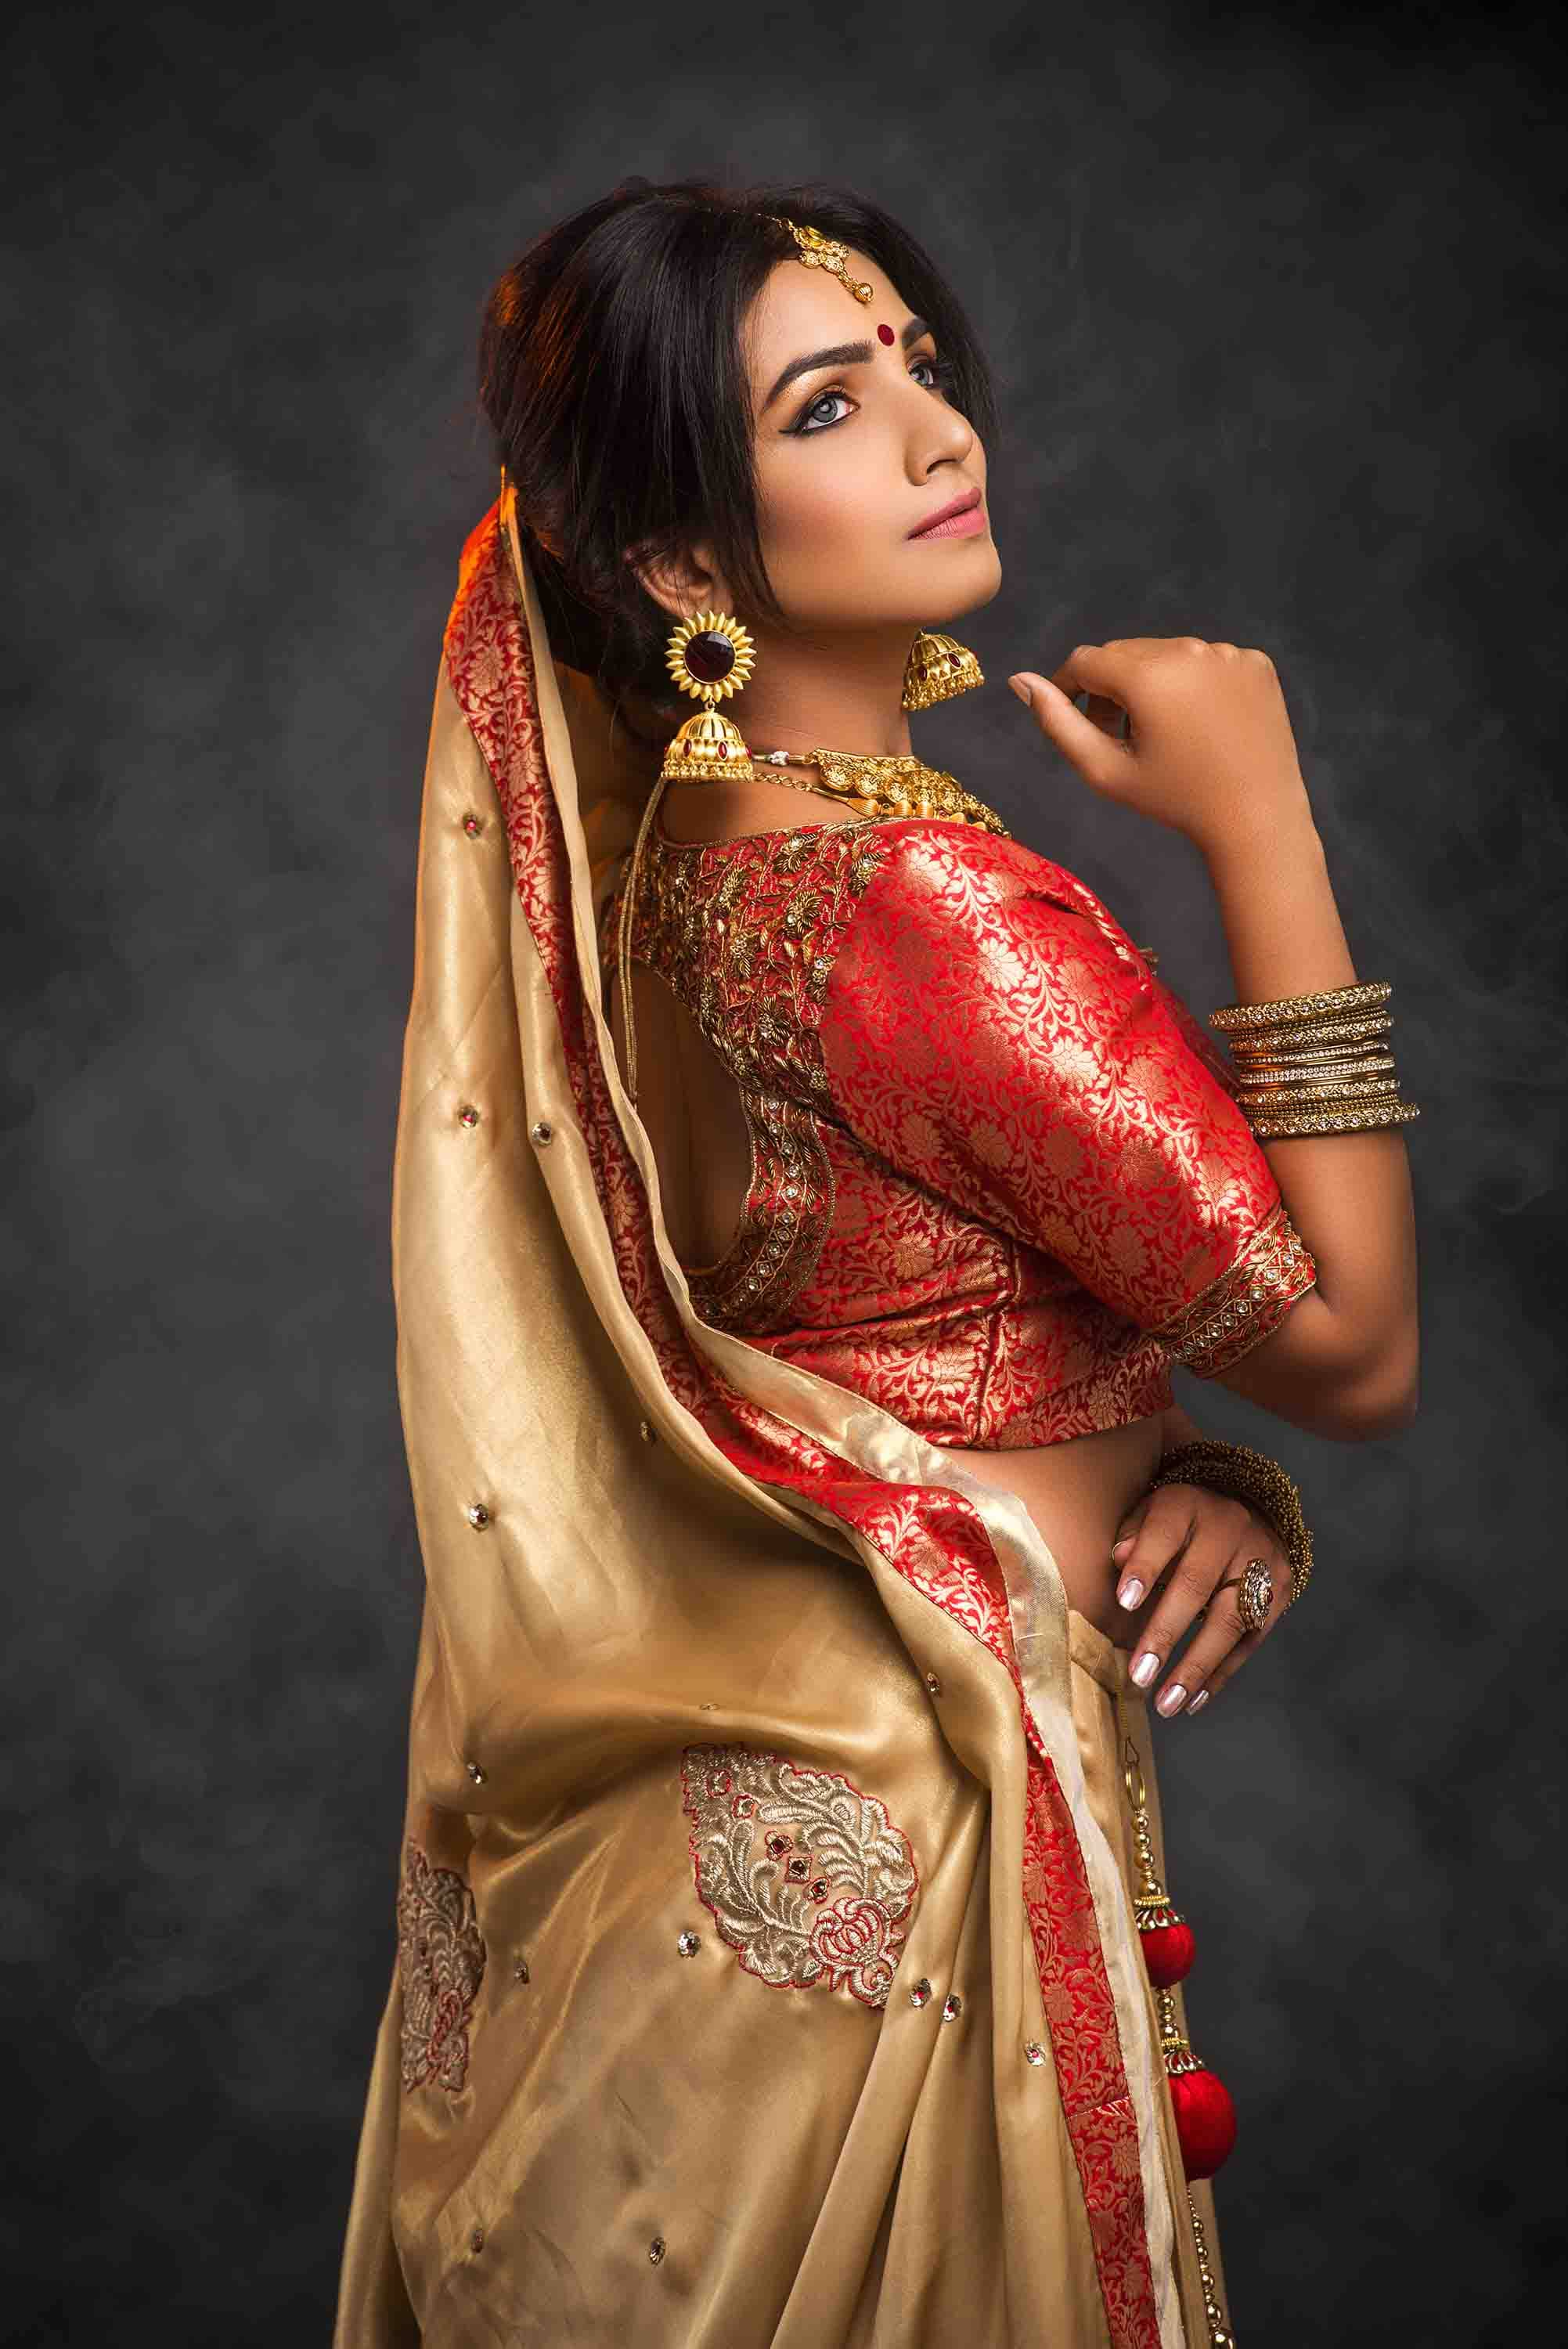 Red and Gold Brocade and Shimmer Flared lehenga choli